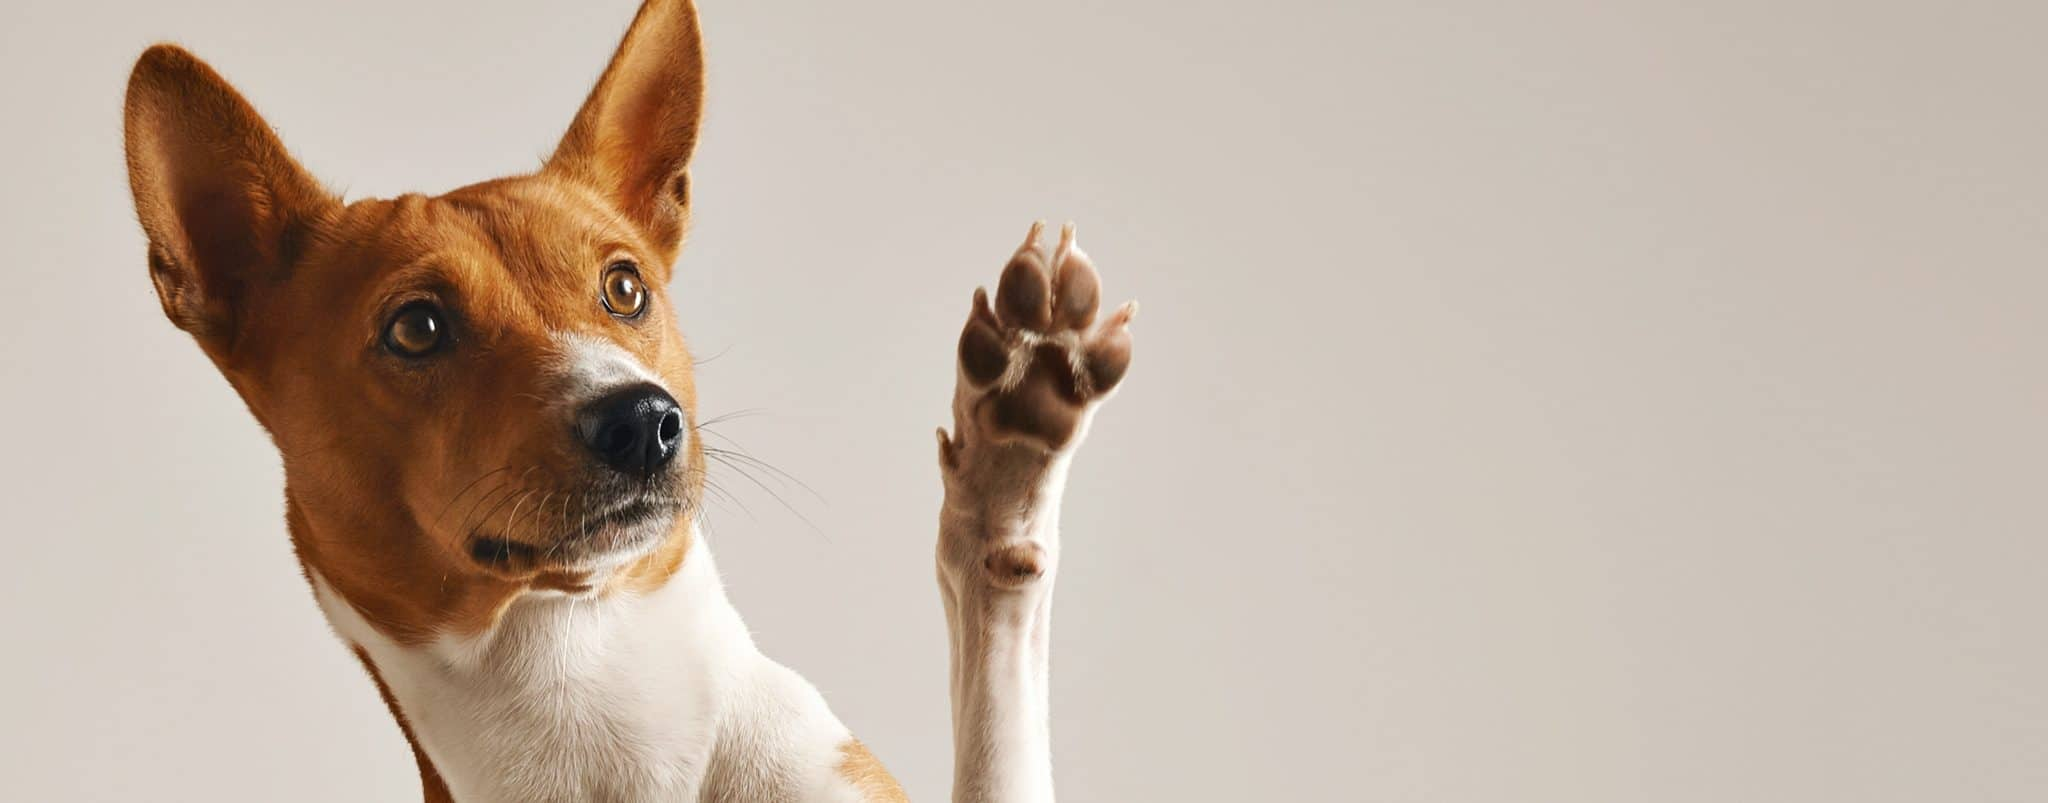 Cute dog giving his paw |